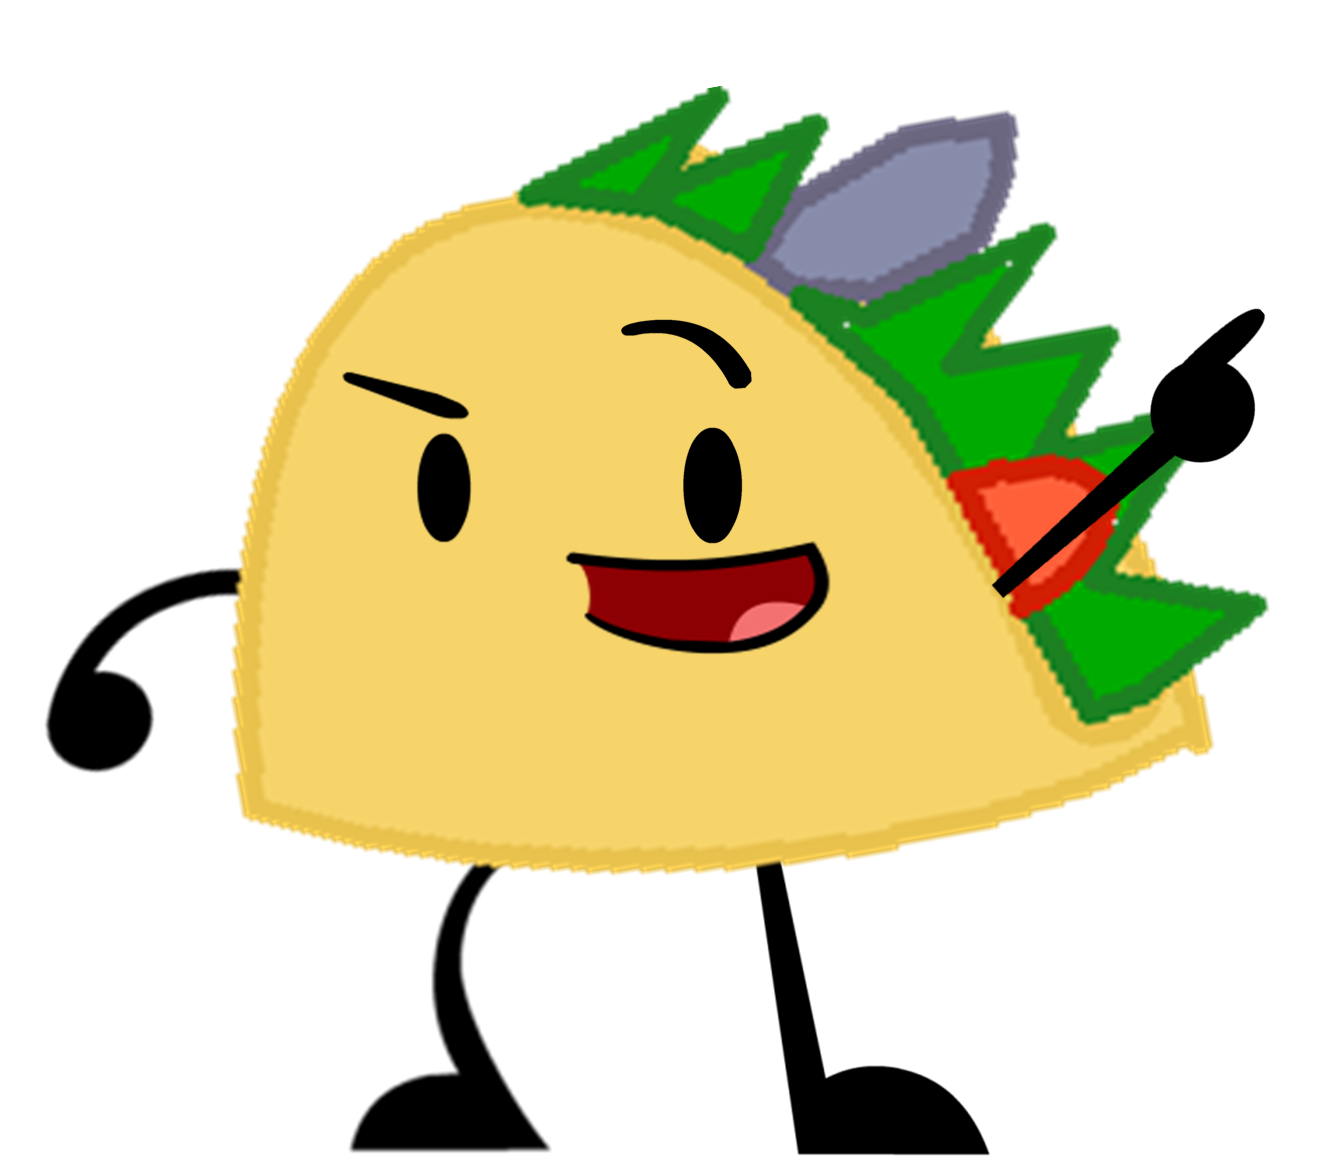 Image taco png object. Tacos clipart smile